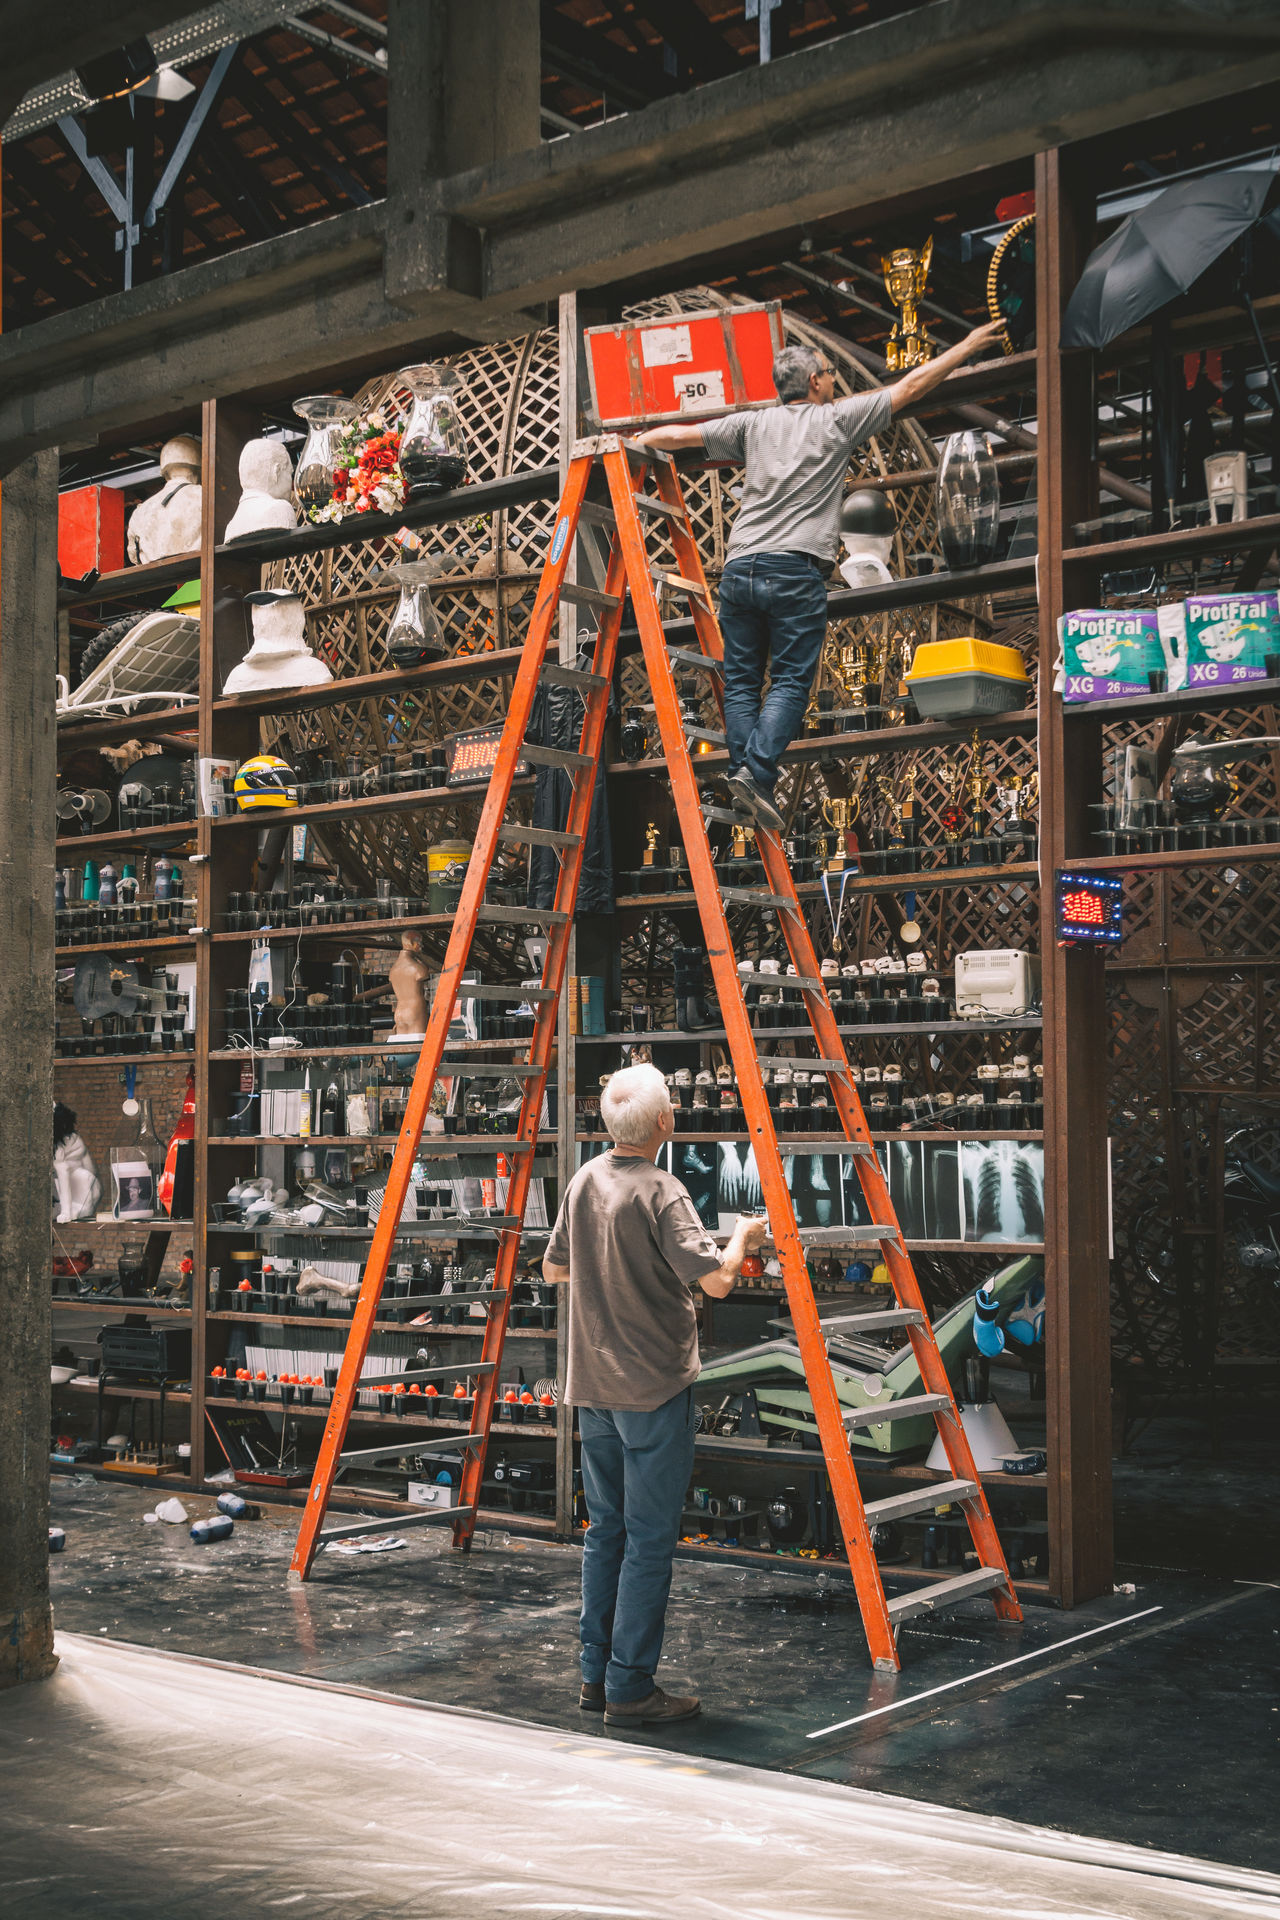 Hard to work to get everything sorted up there. Adult Adults Only Architecture Casual Clothing Day Exhibition Hardhat  Helmet Holding Indoors  Industry Ladder Mature Adult Men Occupation Occupational Safety And Health Only Men People Real People Rear View Reflective Clothing Shelf Standing The Street Photographer - 2017 EyeEm Awards Working